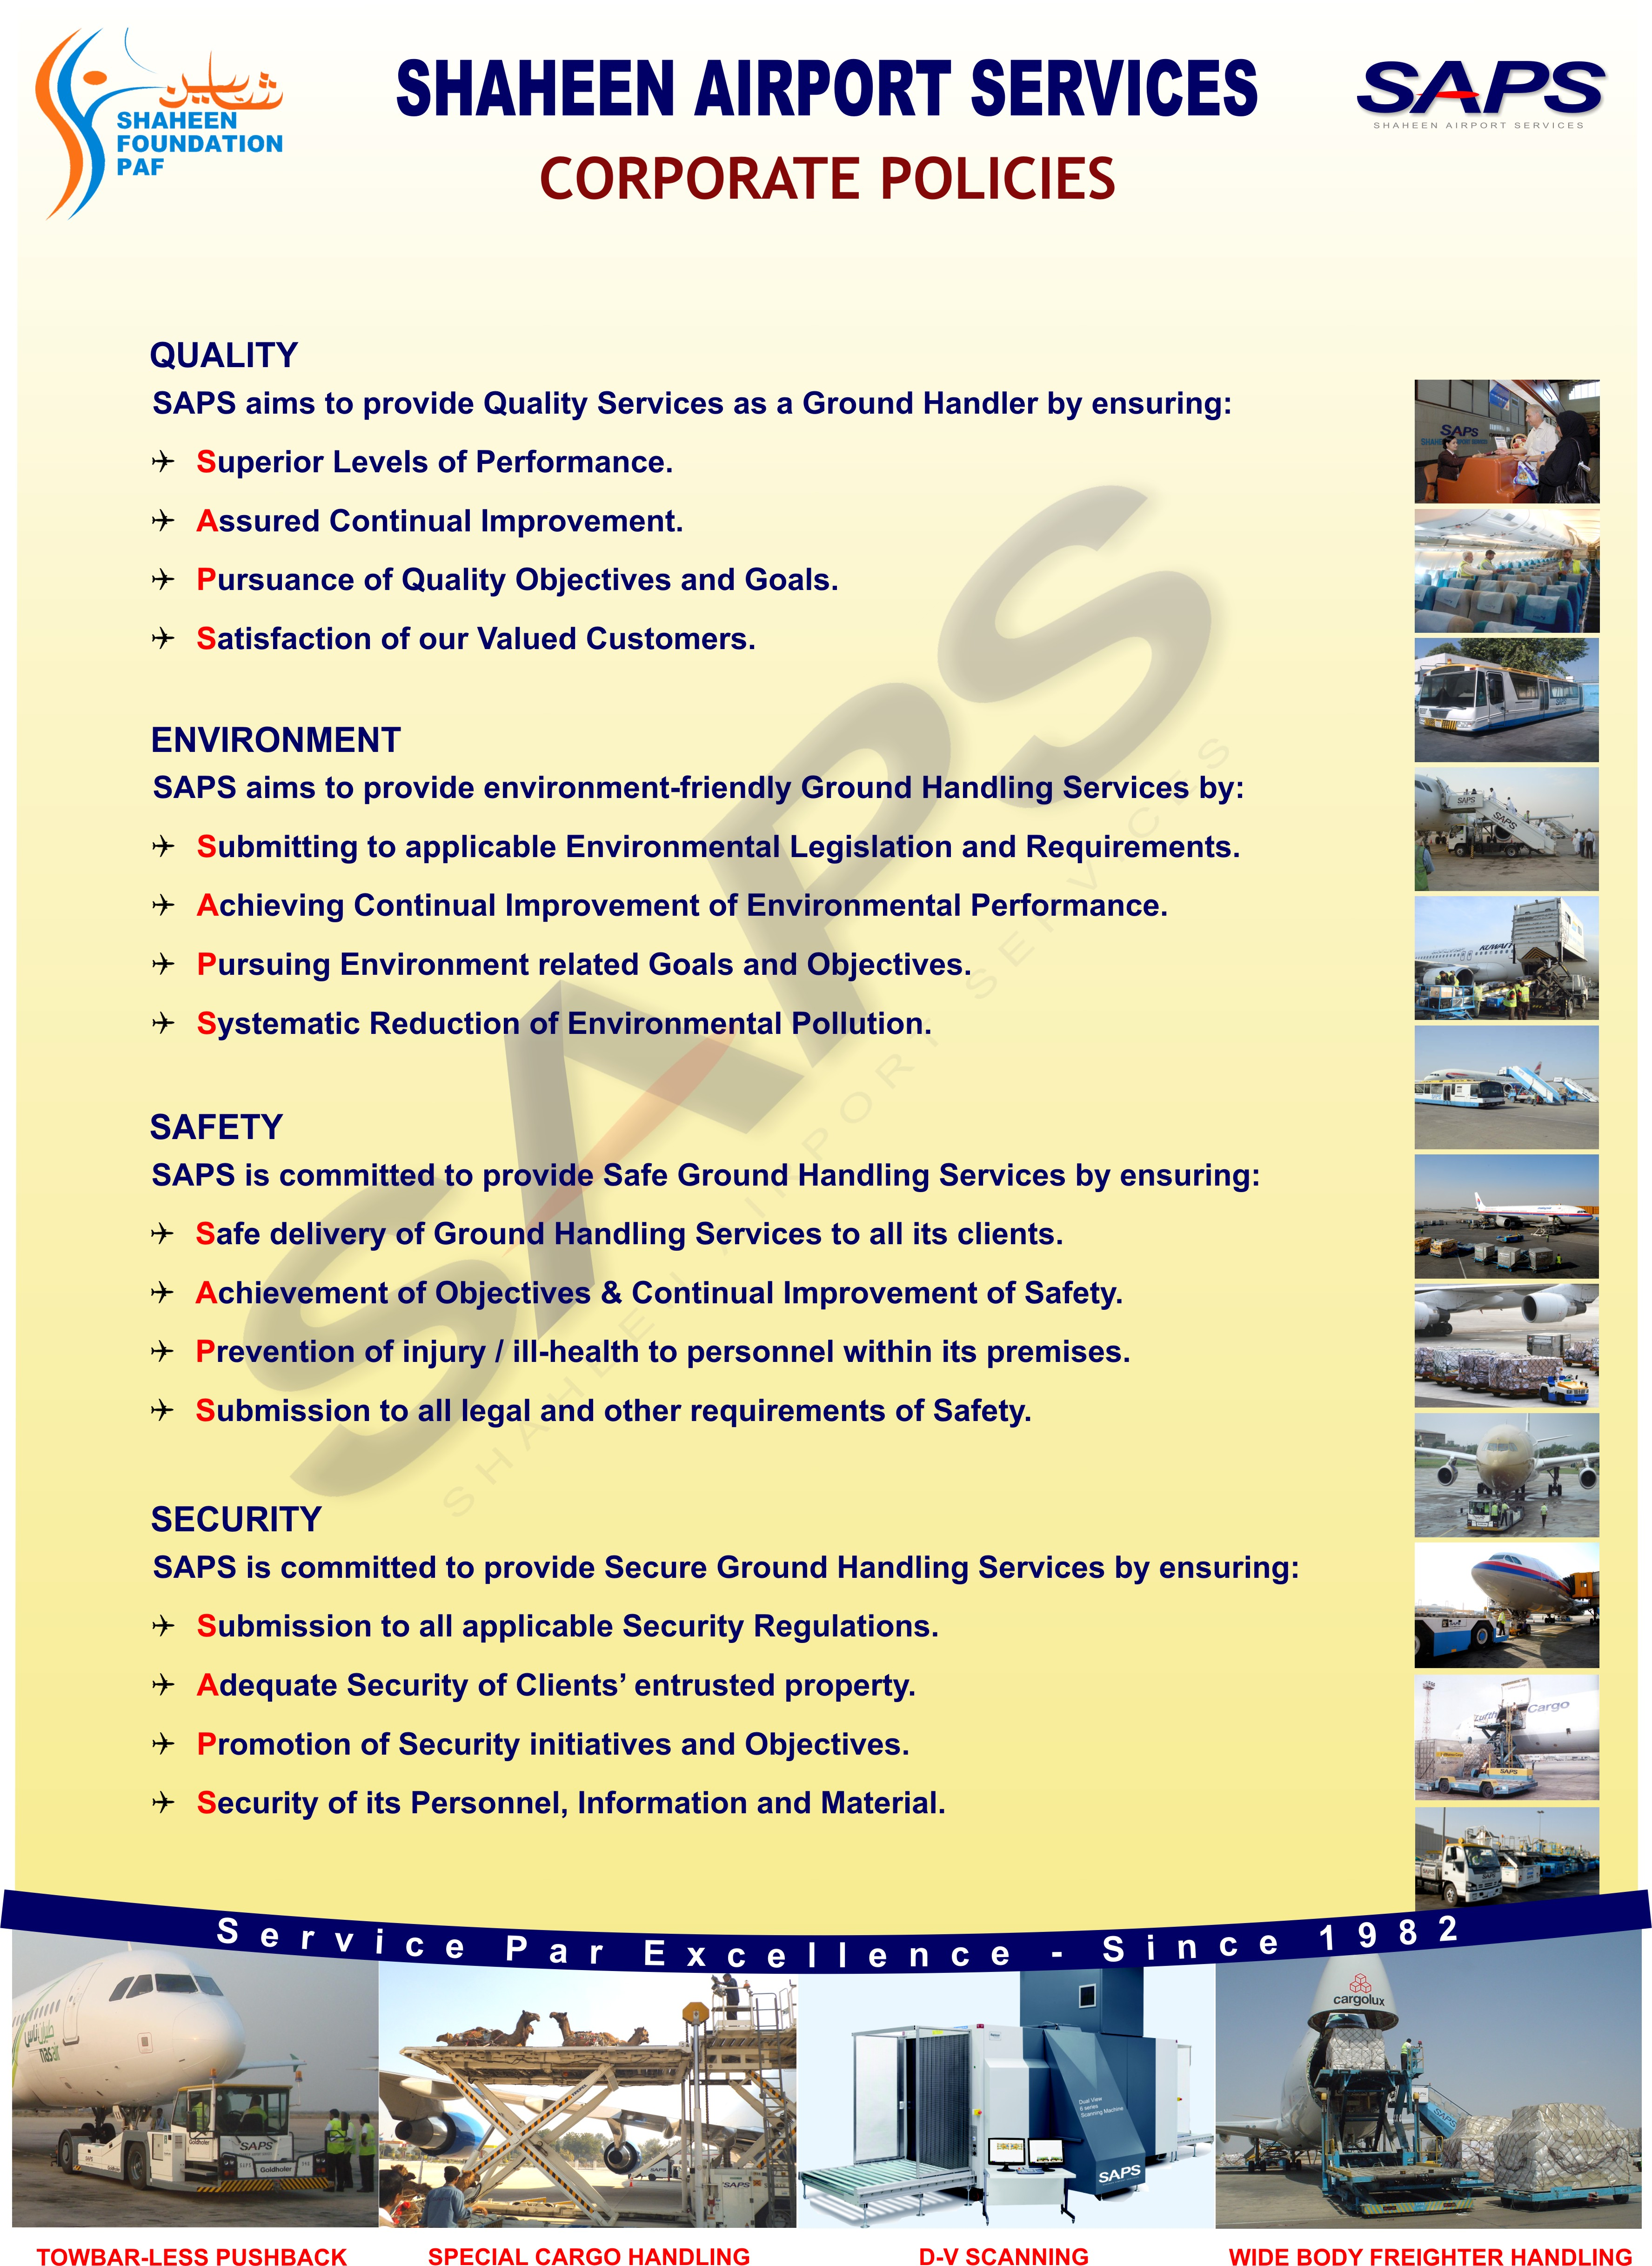 SAPS - Shaheen Airport Services